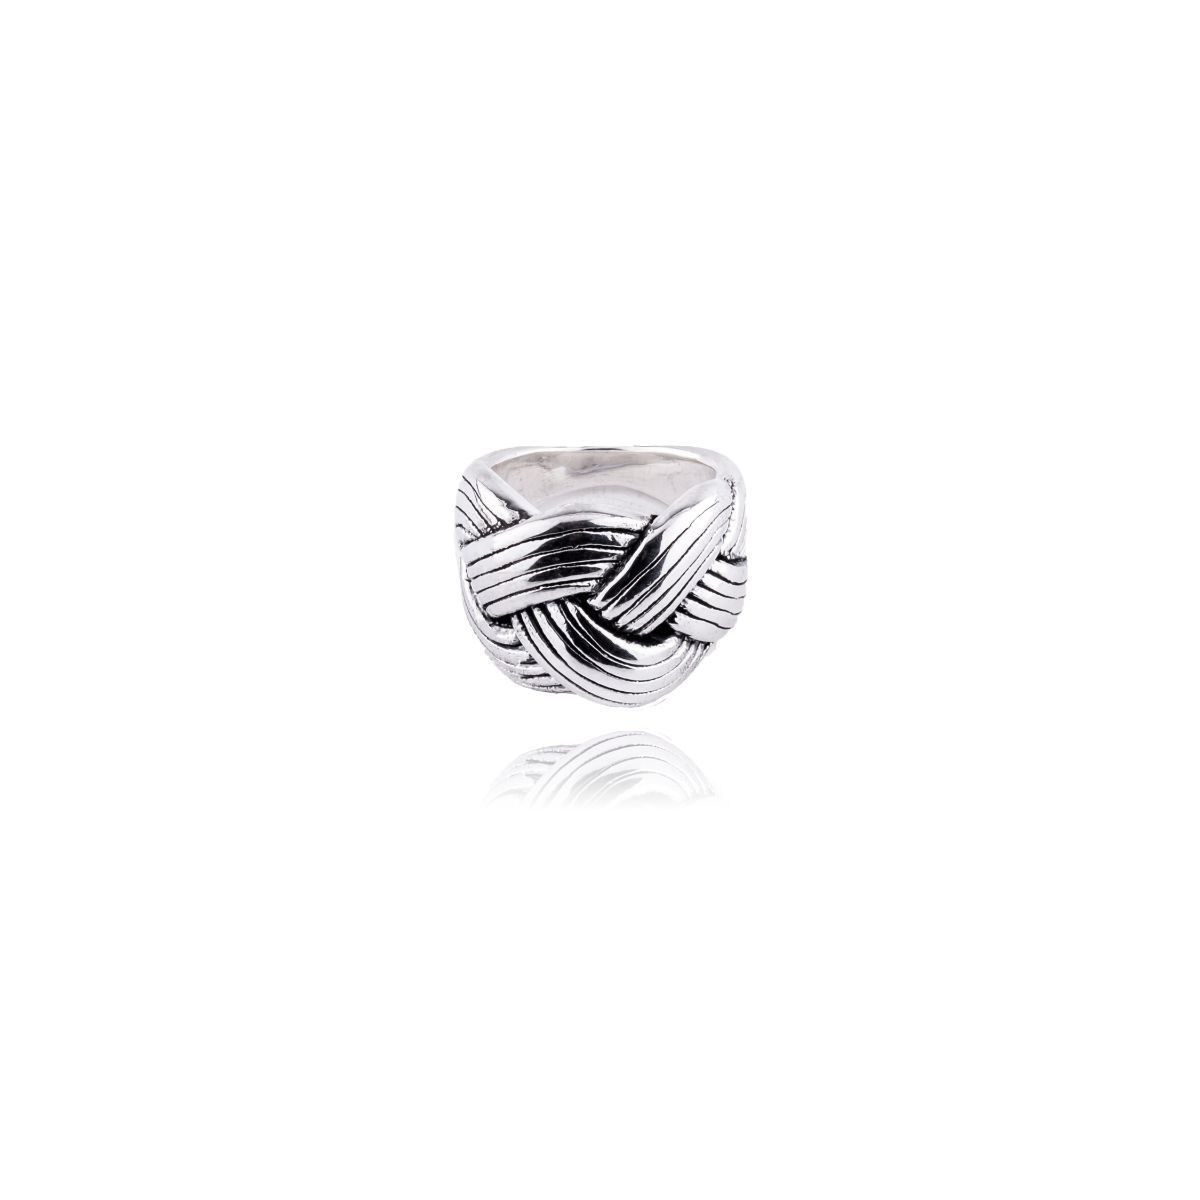 Leo sterling silver ring in the shape of a ribbon with small engravings simulating a rope.